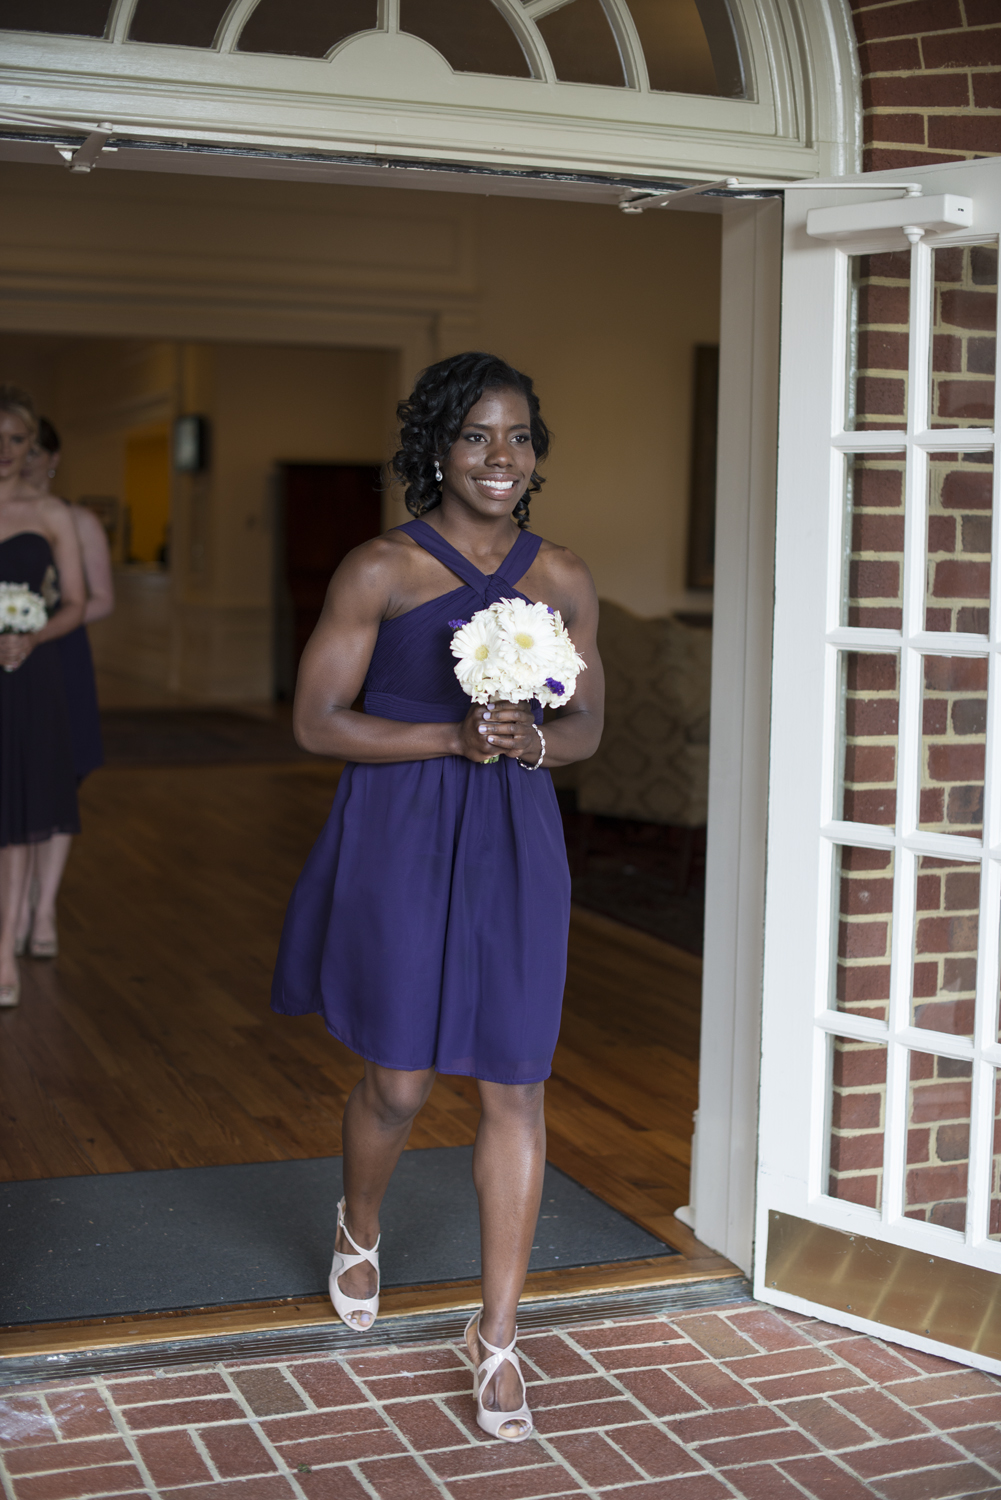 Bridal party procession |Maria Grace Photography